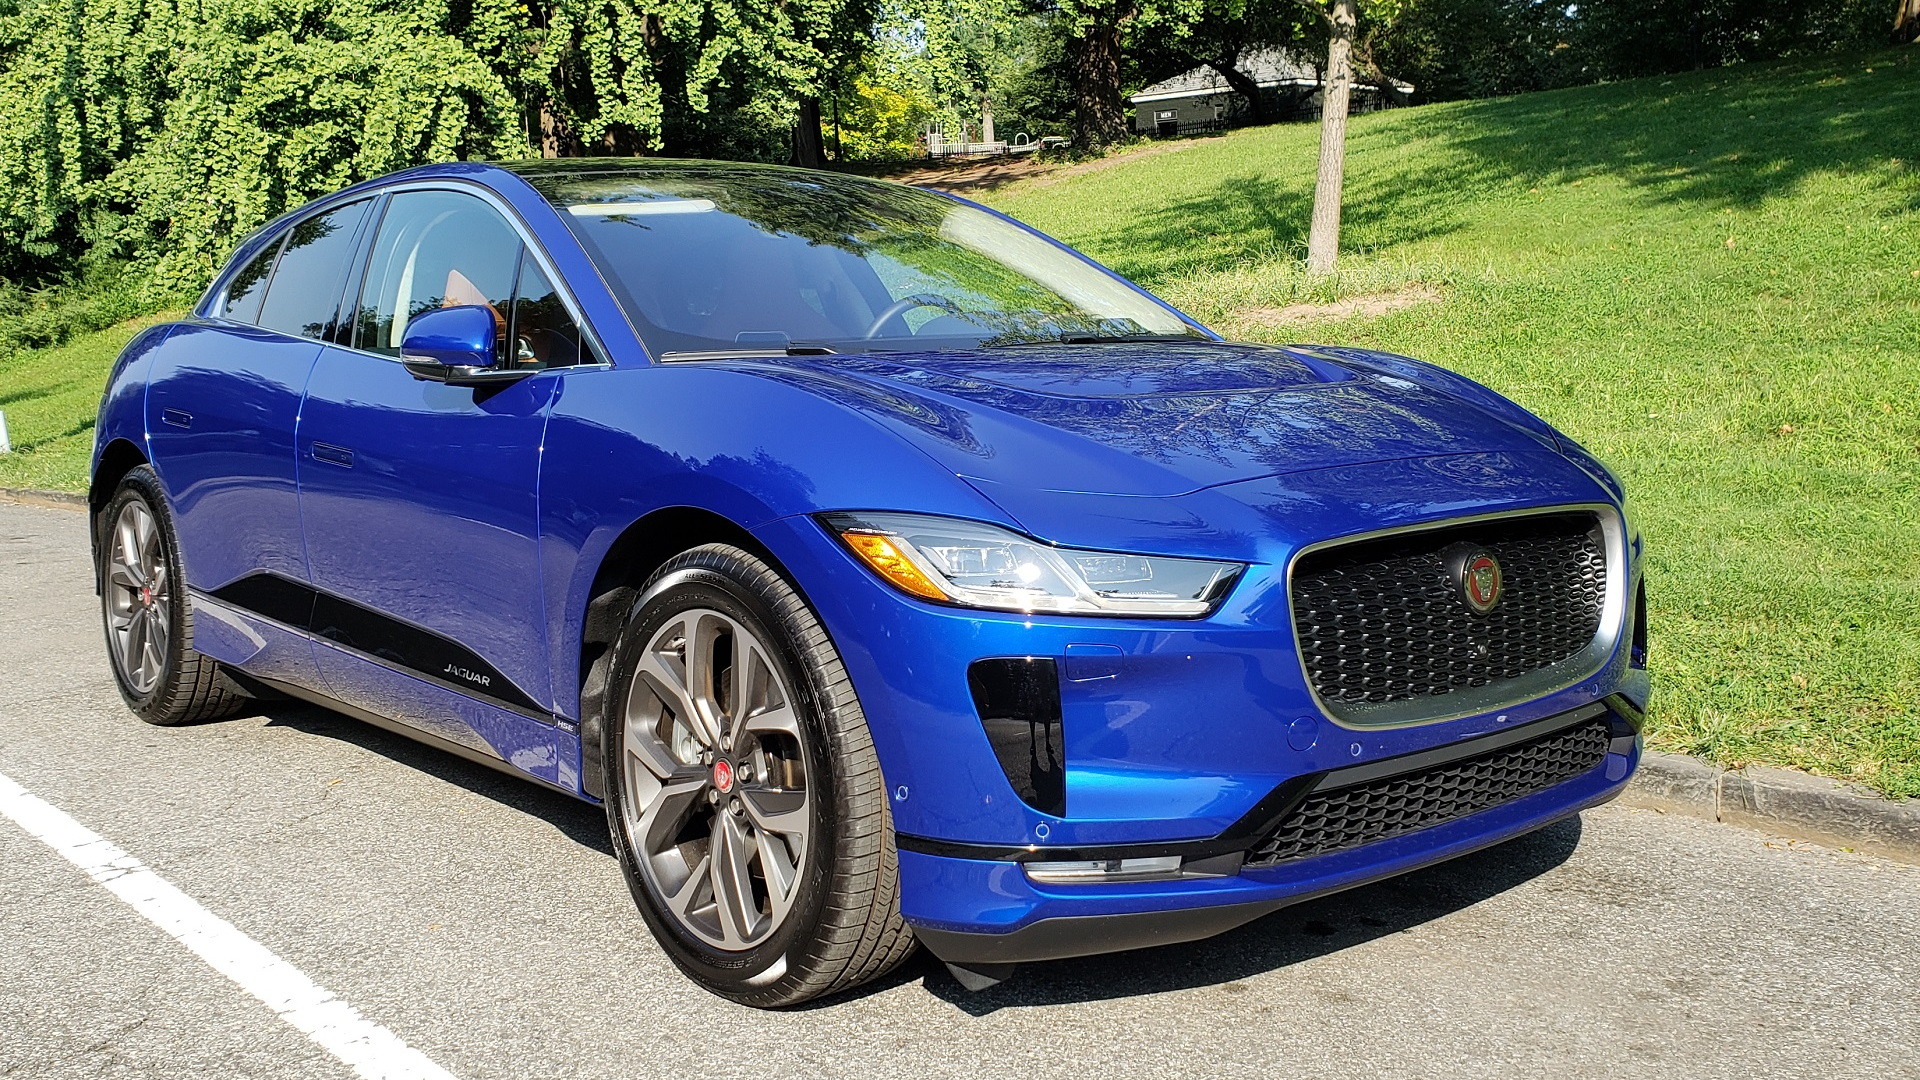 2019 Jaguar I-Pace real-world review: 3 days with the sexy